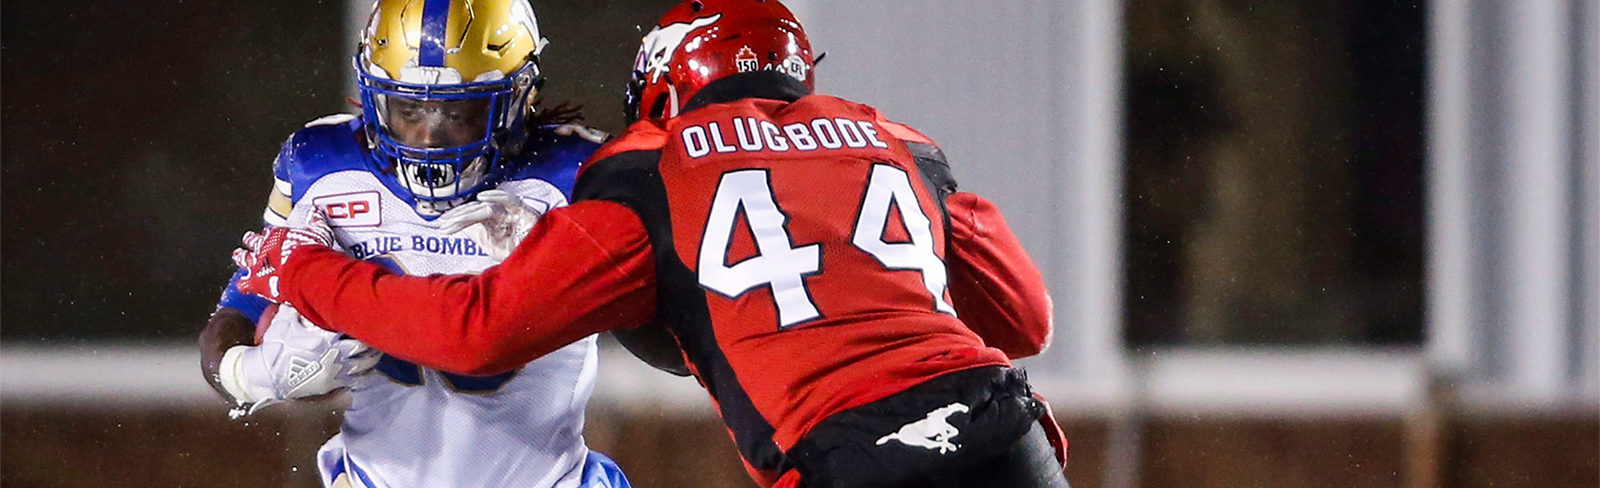 new product 8923b 5a716 Olugbode: Good to be back out there - Calgary Stampeders